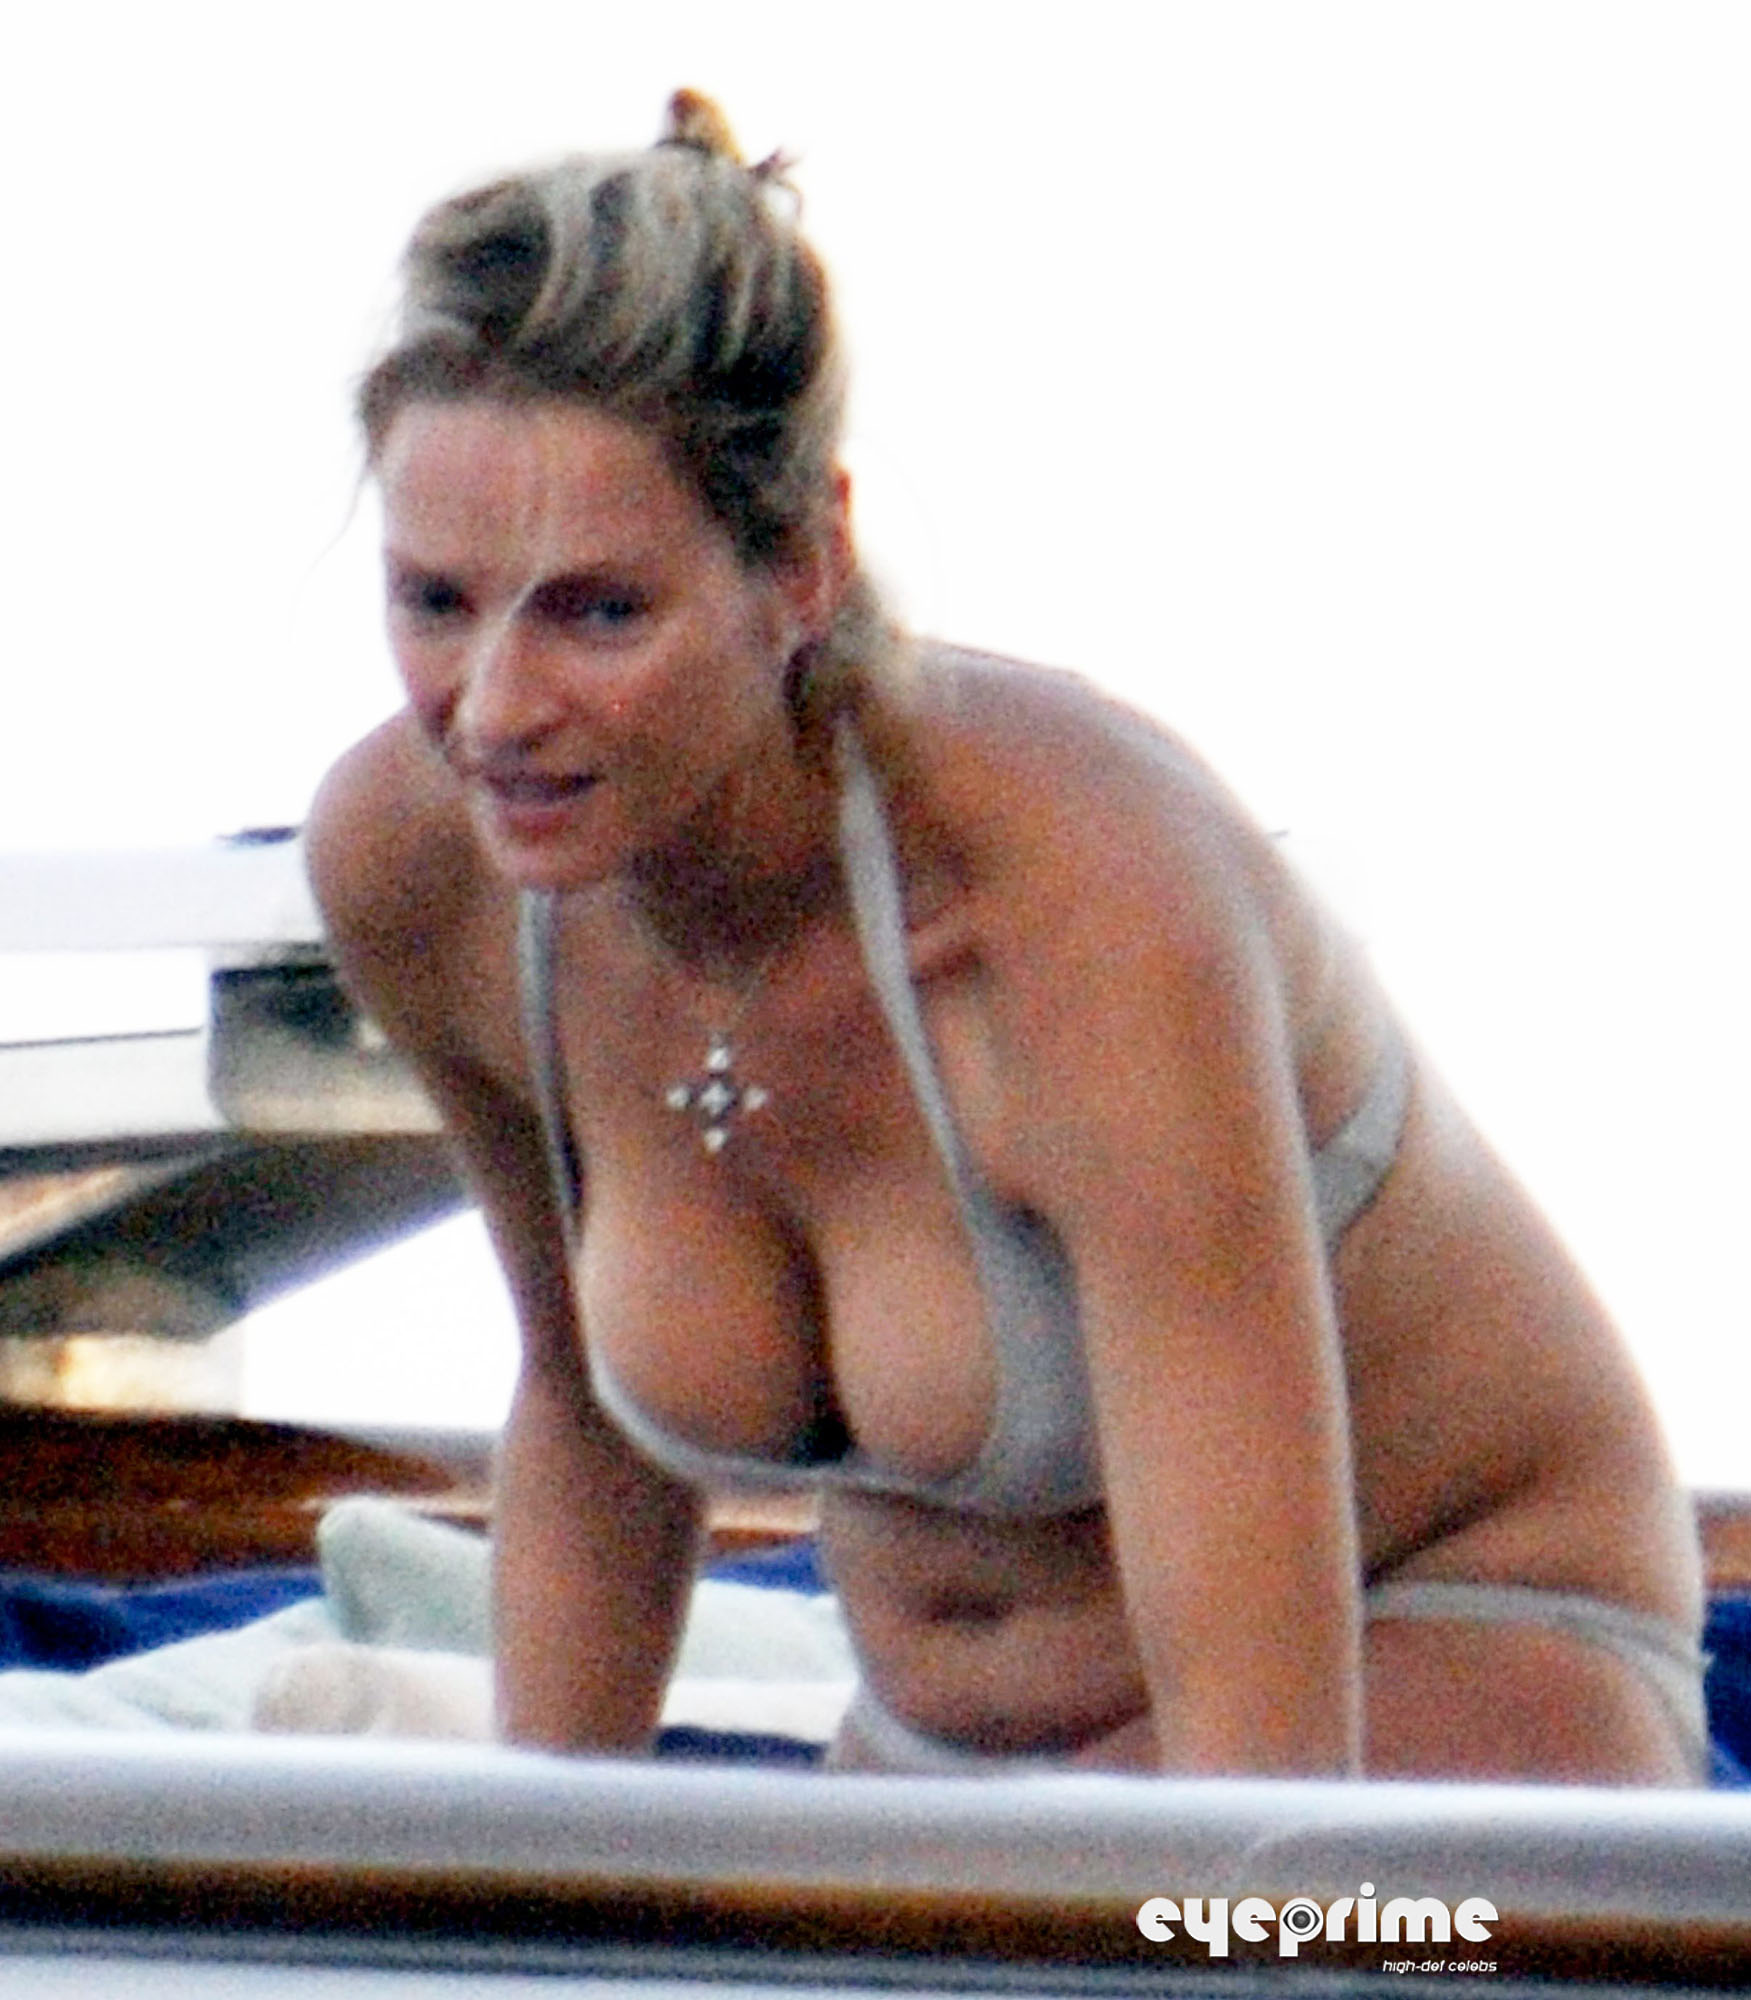 uma thurman pregnant bikini candids in italy aug 2010 15 Gonzo xxx hentai lesbian porn best music videos of all time toll free phone ...